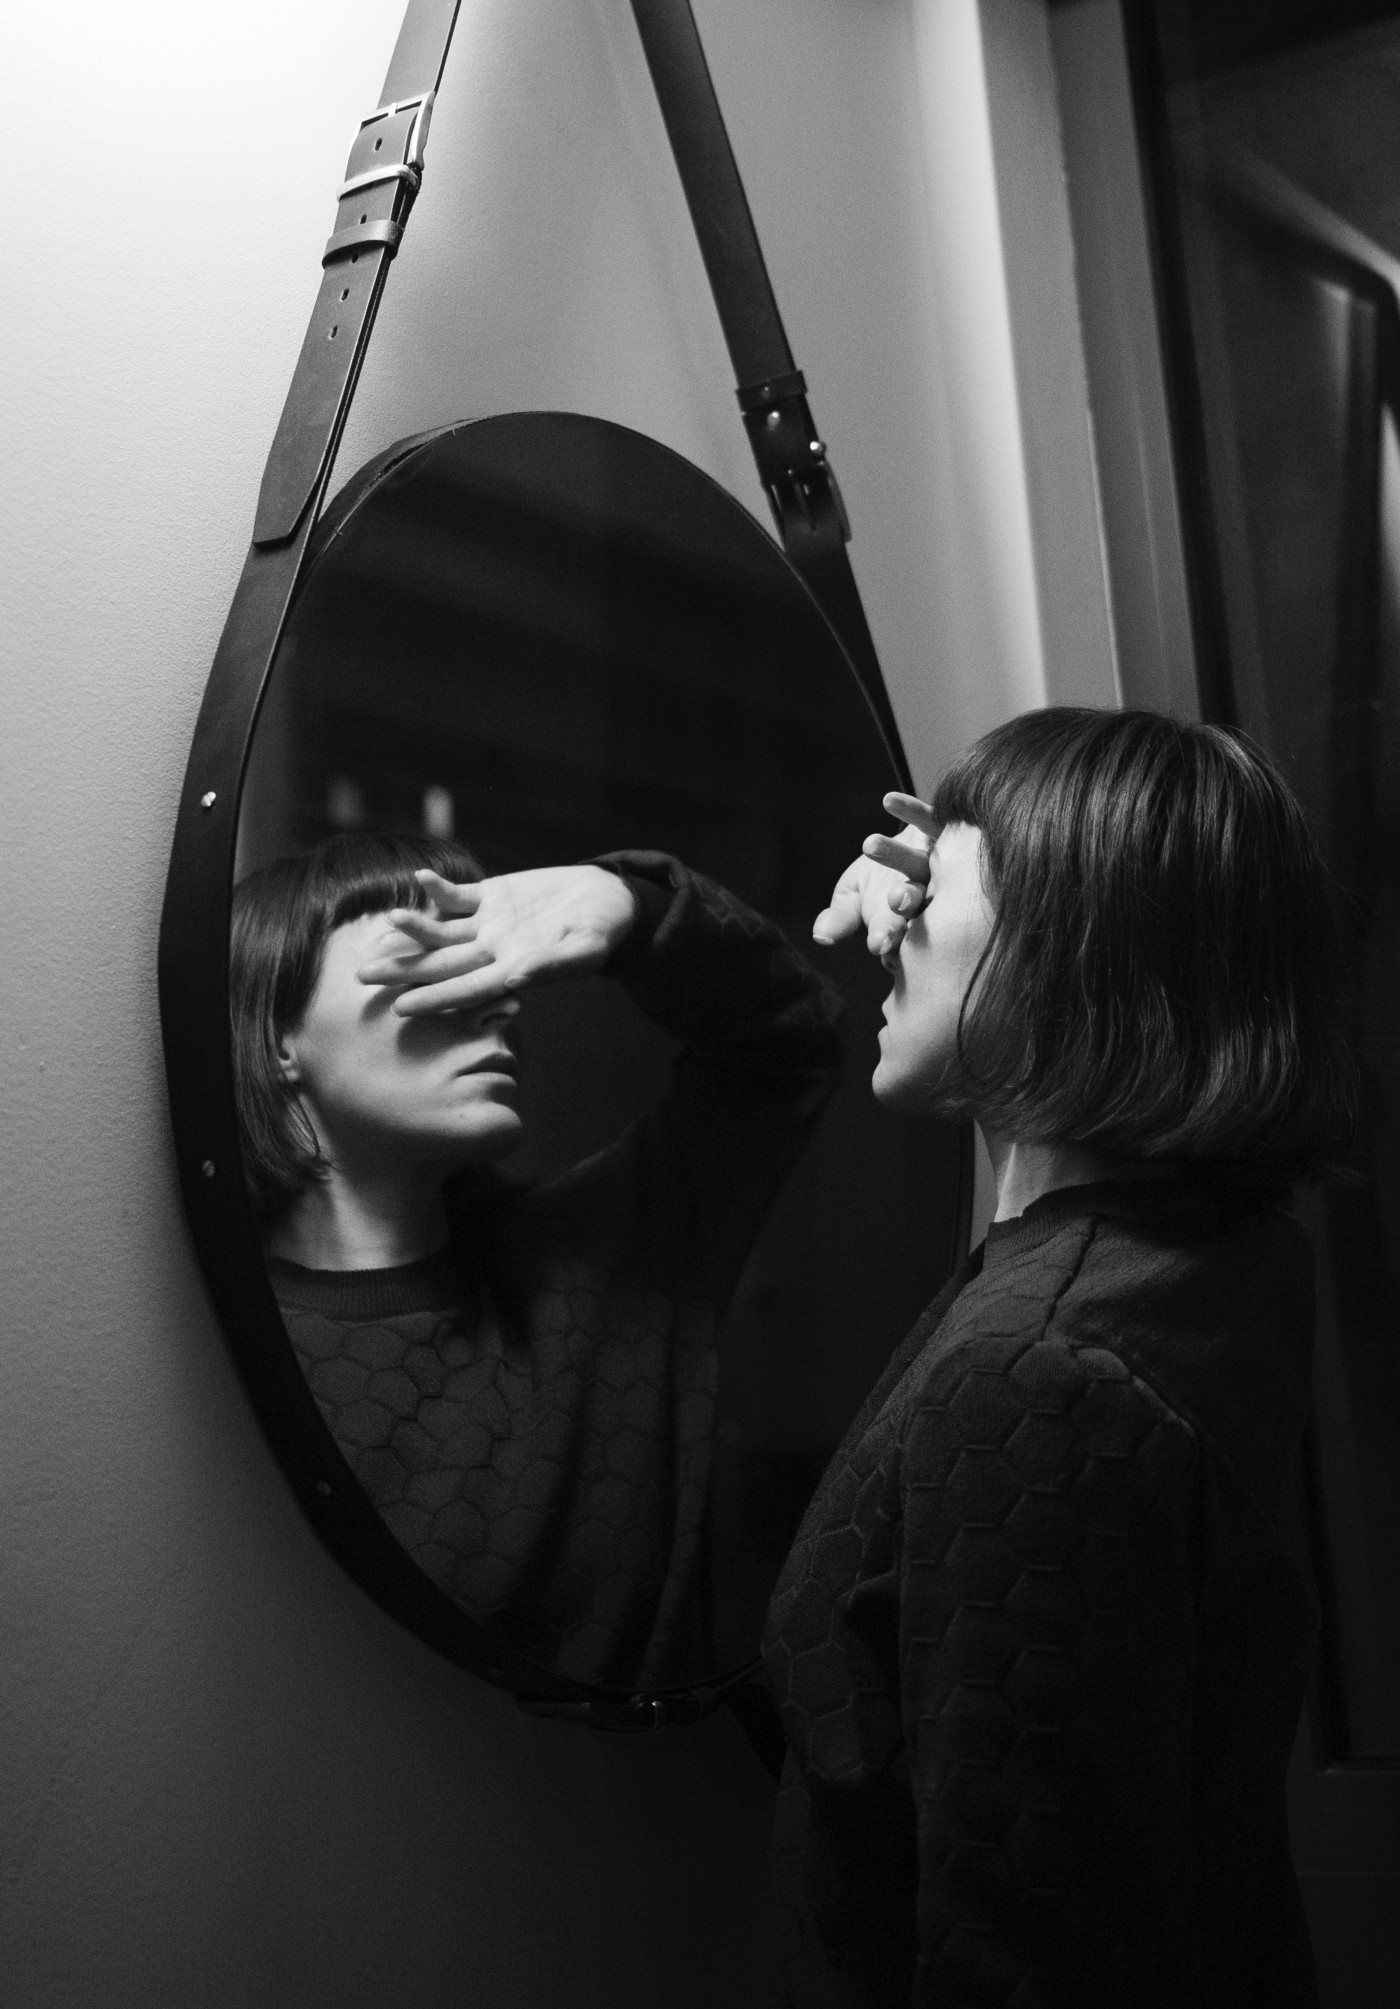 A black and white photo of a woman standing in front of a mirror resting the back of her hand across her eyes